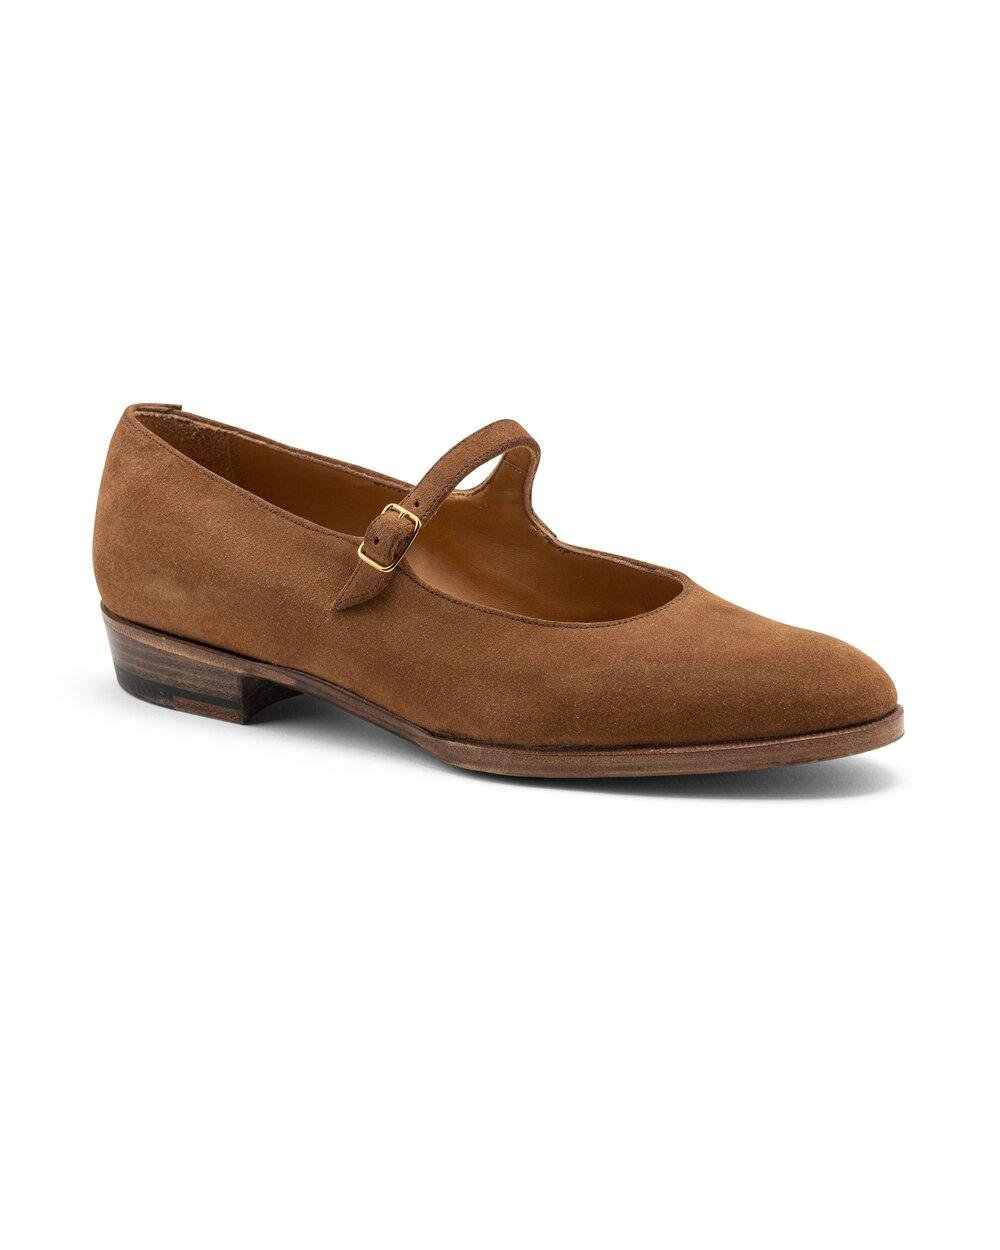 ODPEssentials Classic Mary Jane - Tan Suede 0